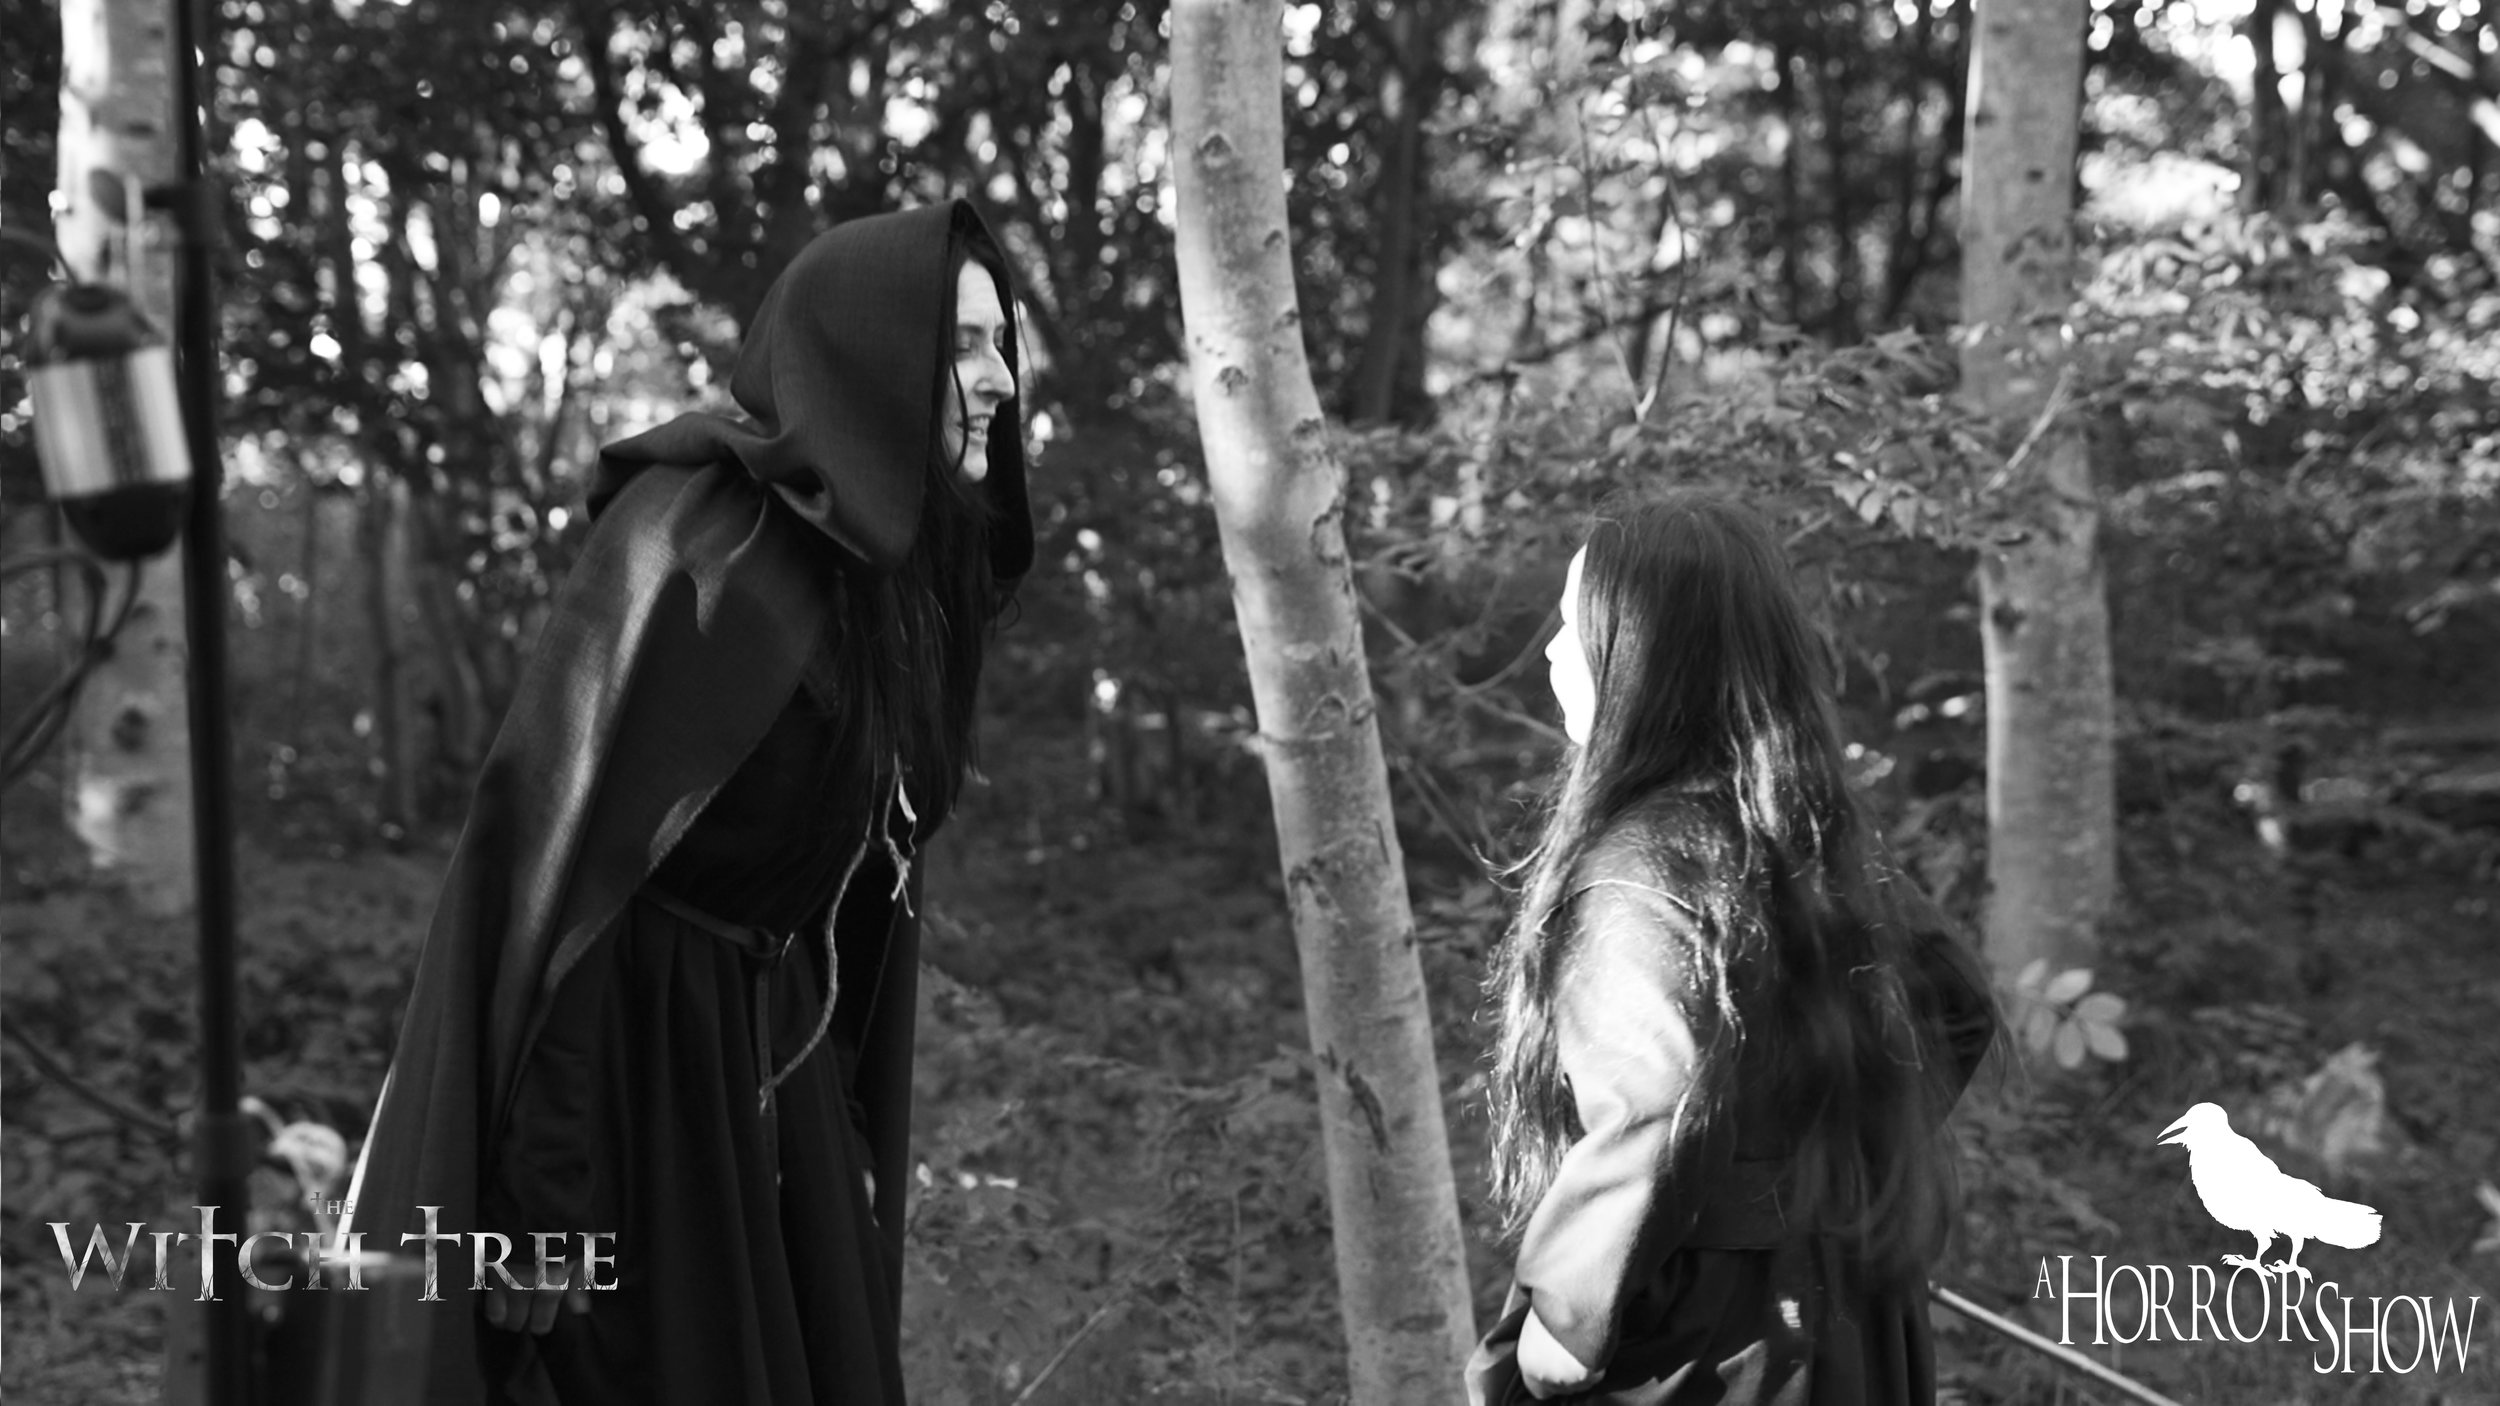 Ceejay and Scarlet Sargent on the set of The Witch Tree.